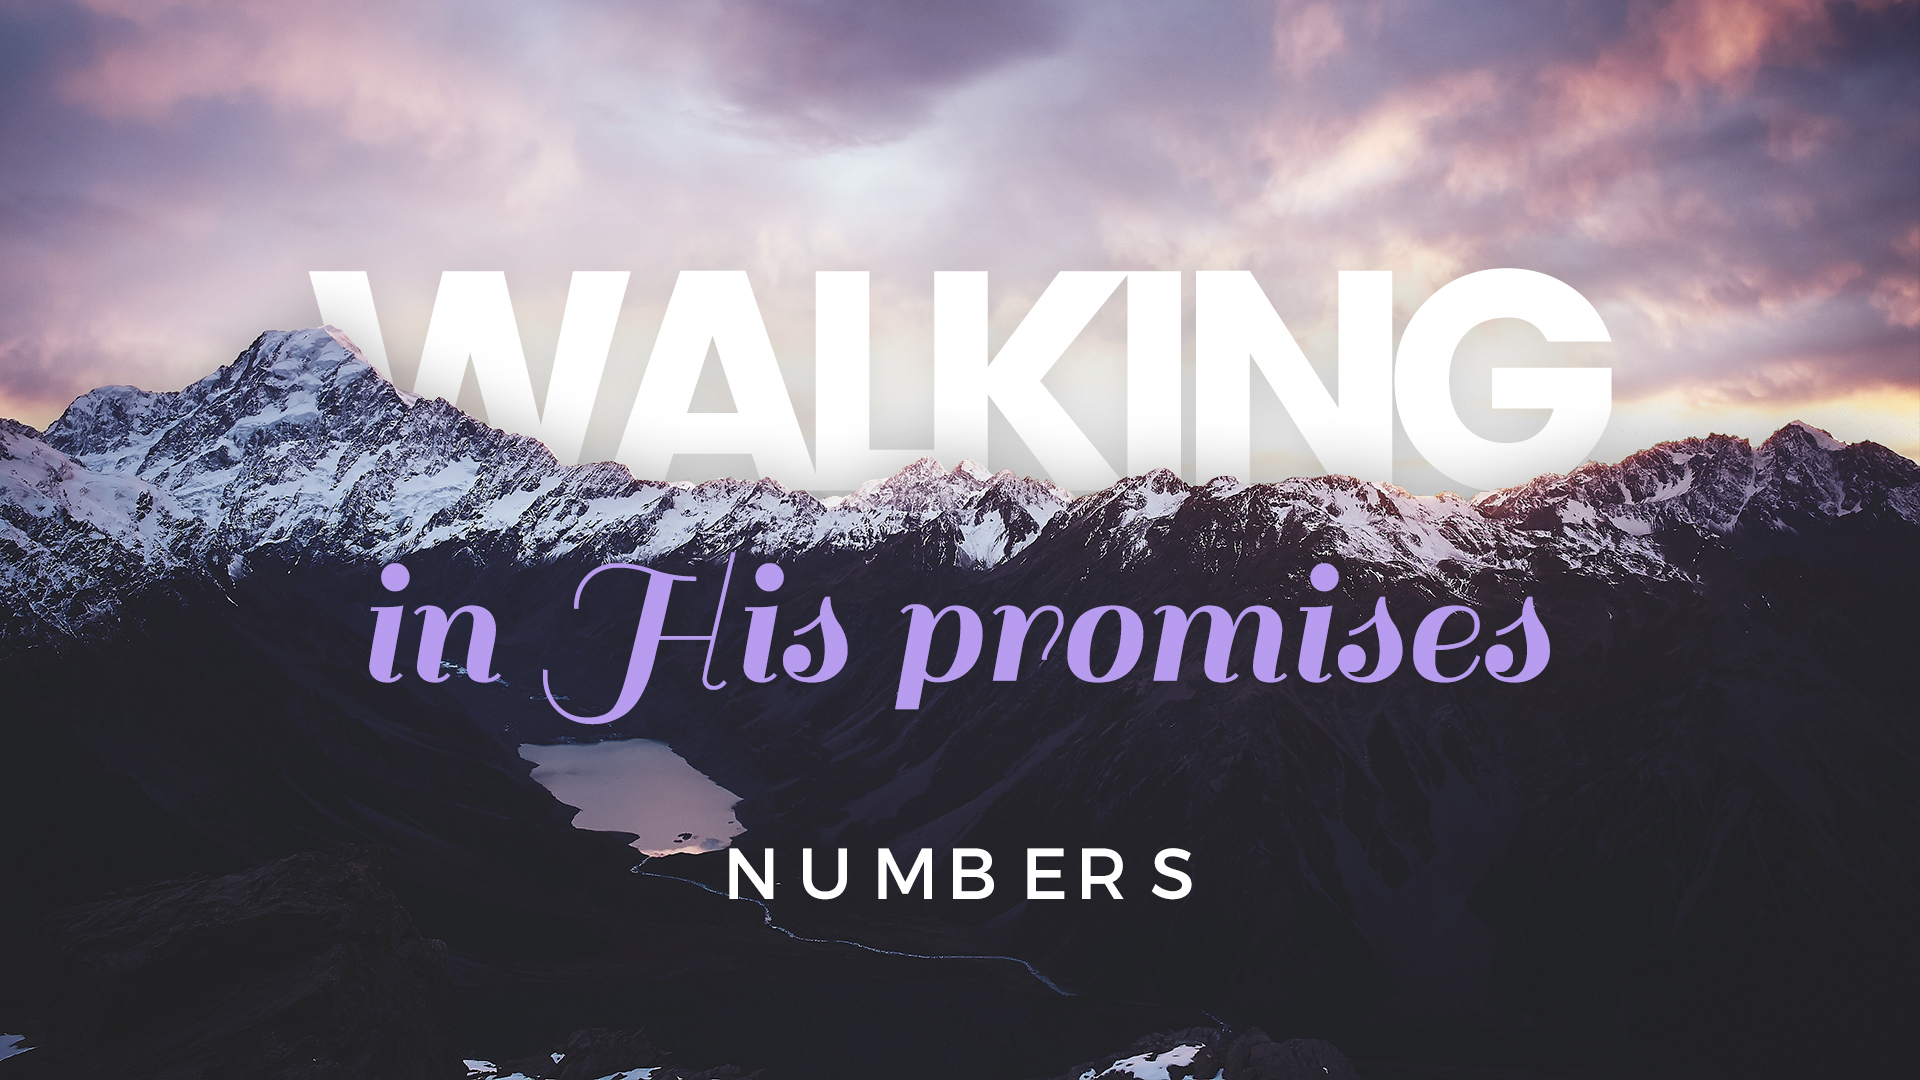 Walking in His promises: Numbers